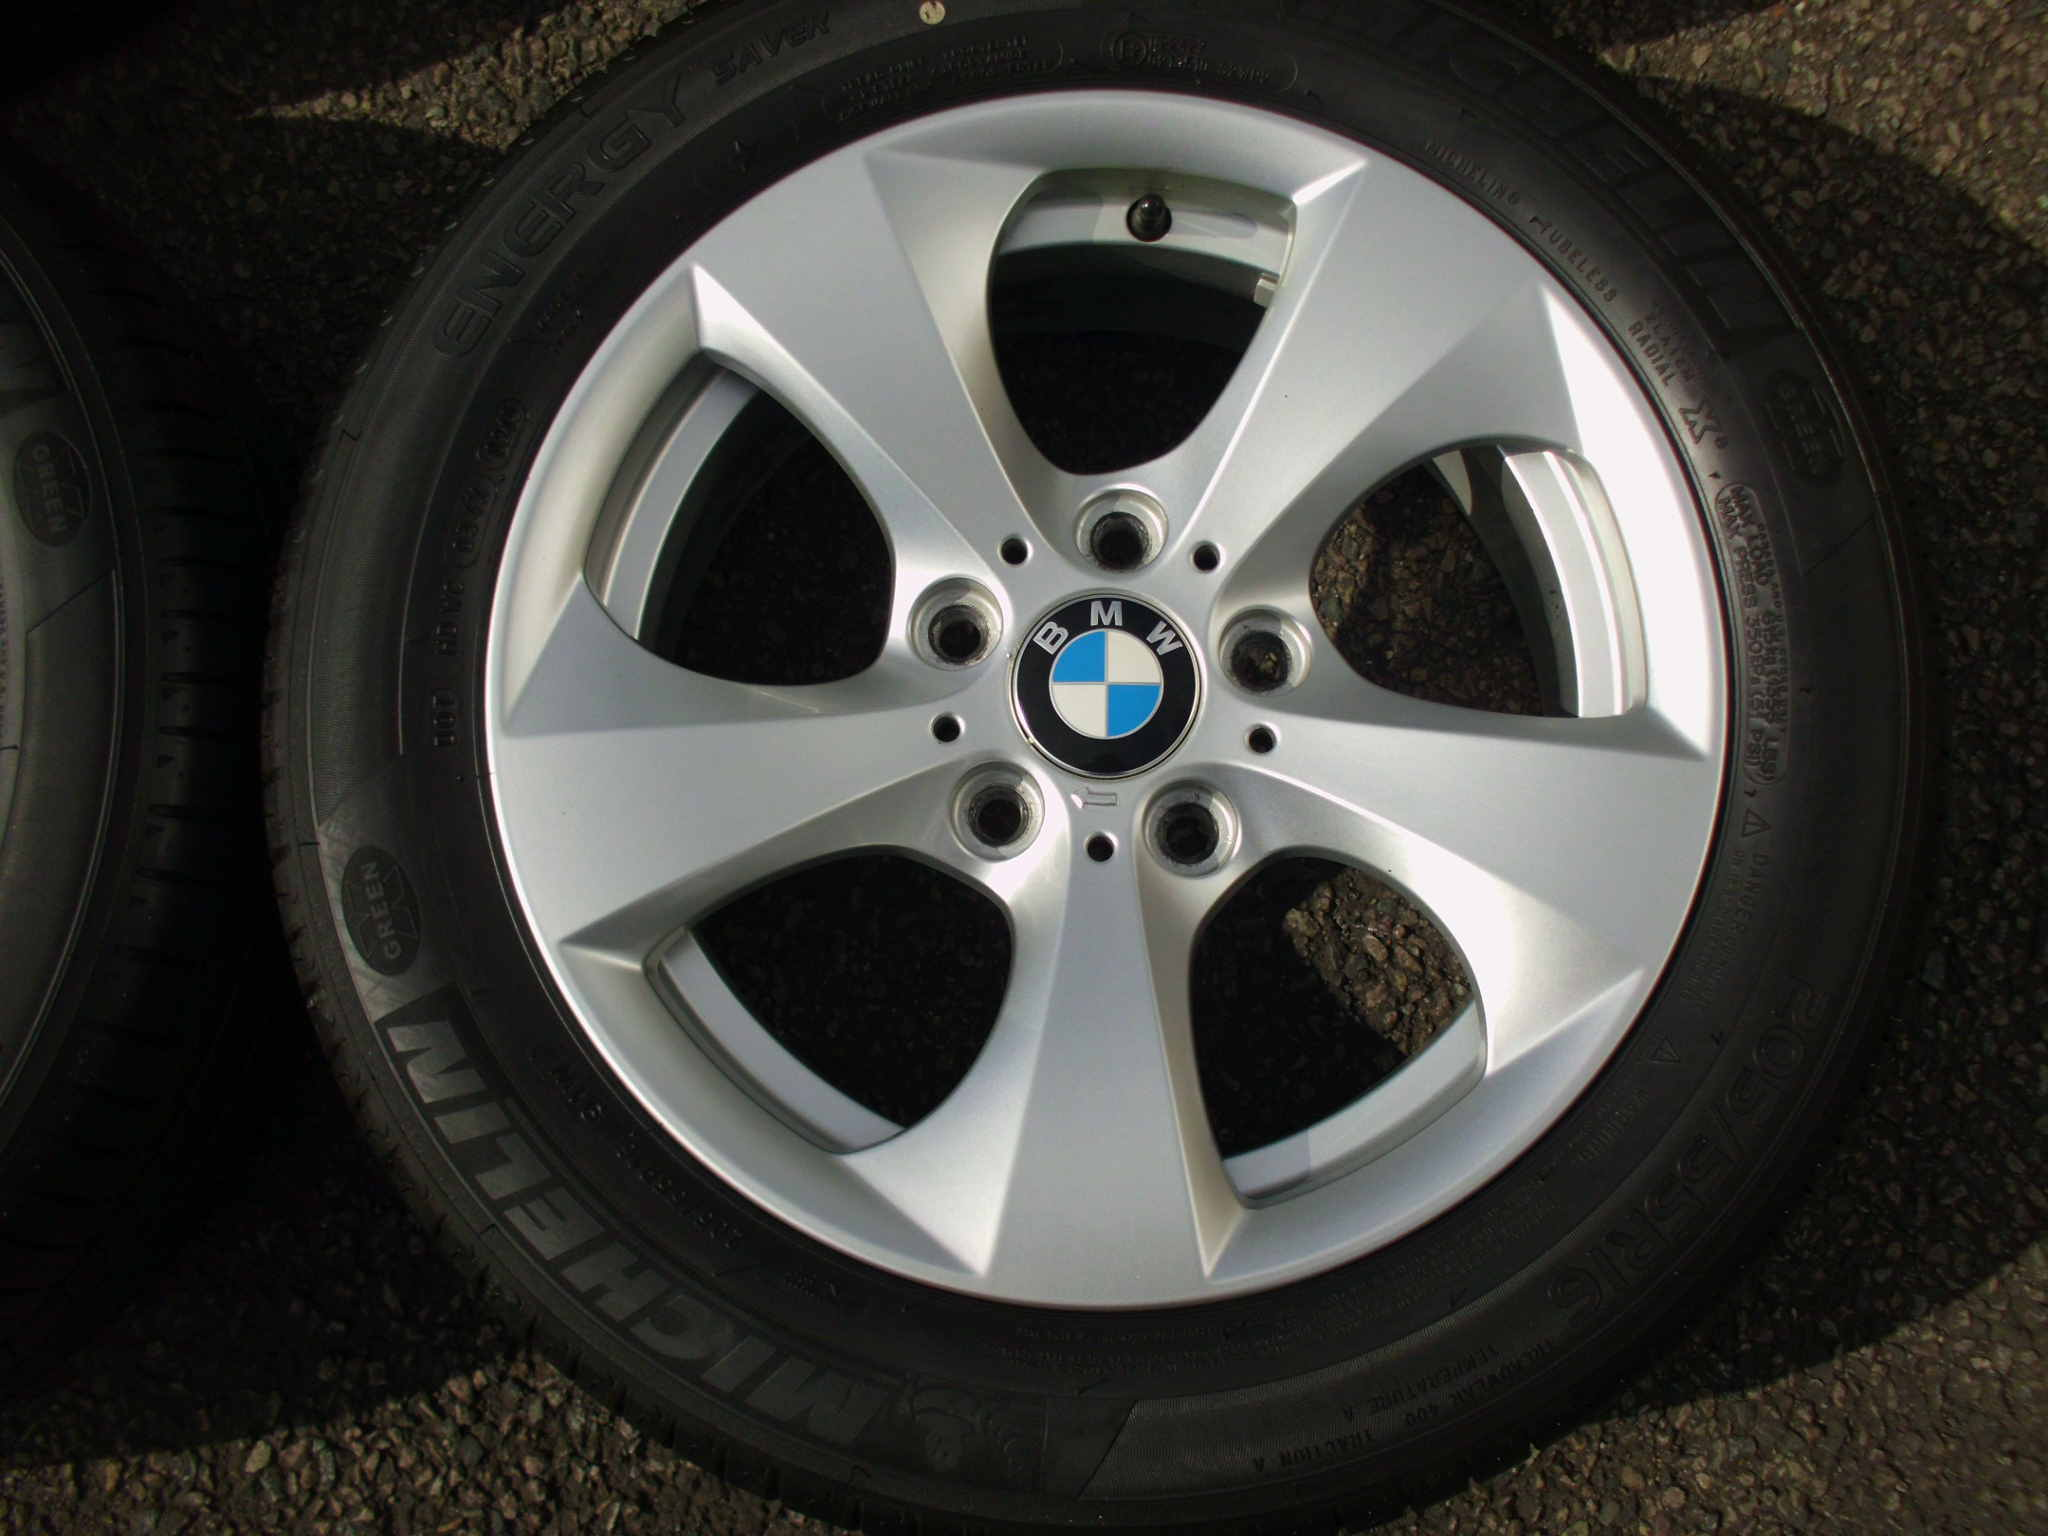 "USED 16"" GENUINE STYLE 306 TURBINE DIRECTIONAL ALLOY WHEELS, VERY GOOD CONDITION INC GOOD MICHELIN TYRES"